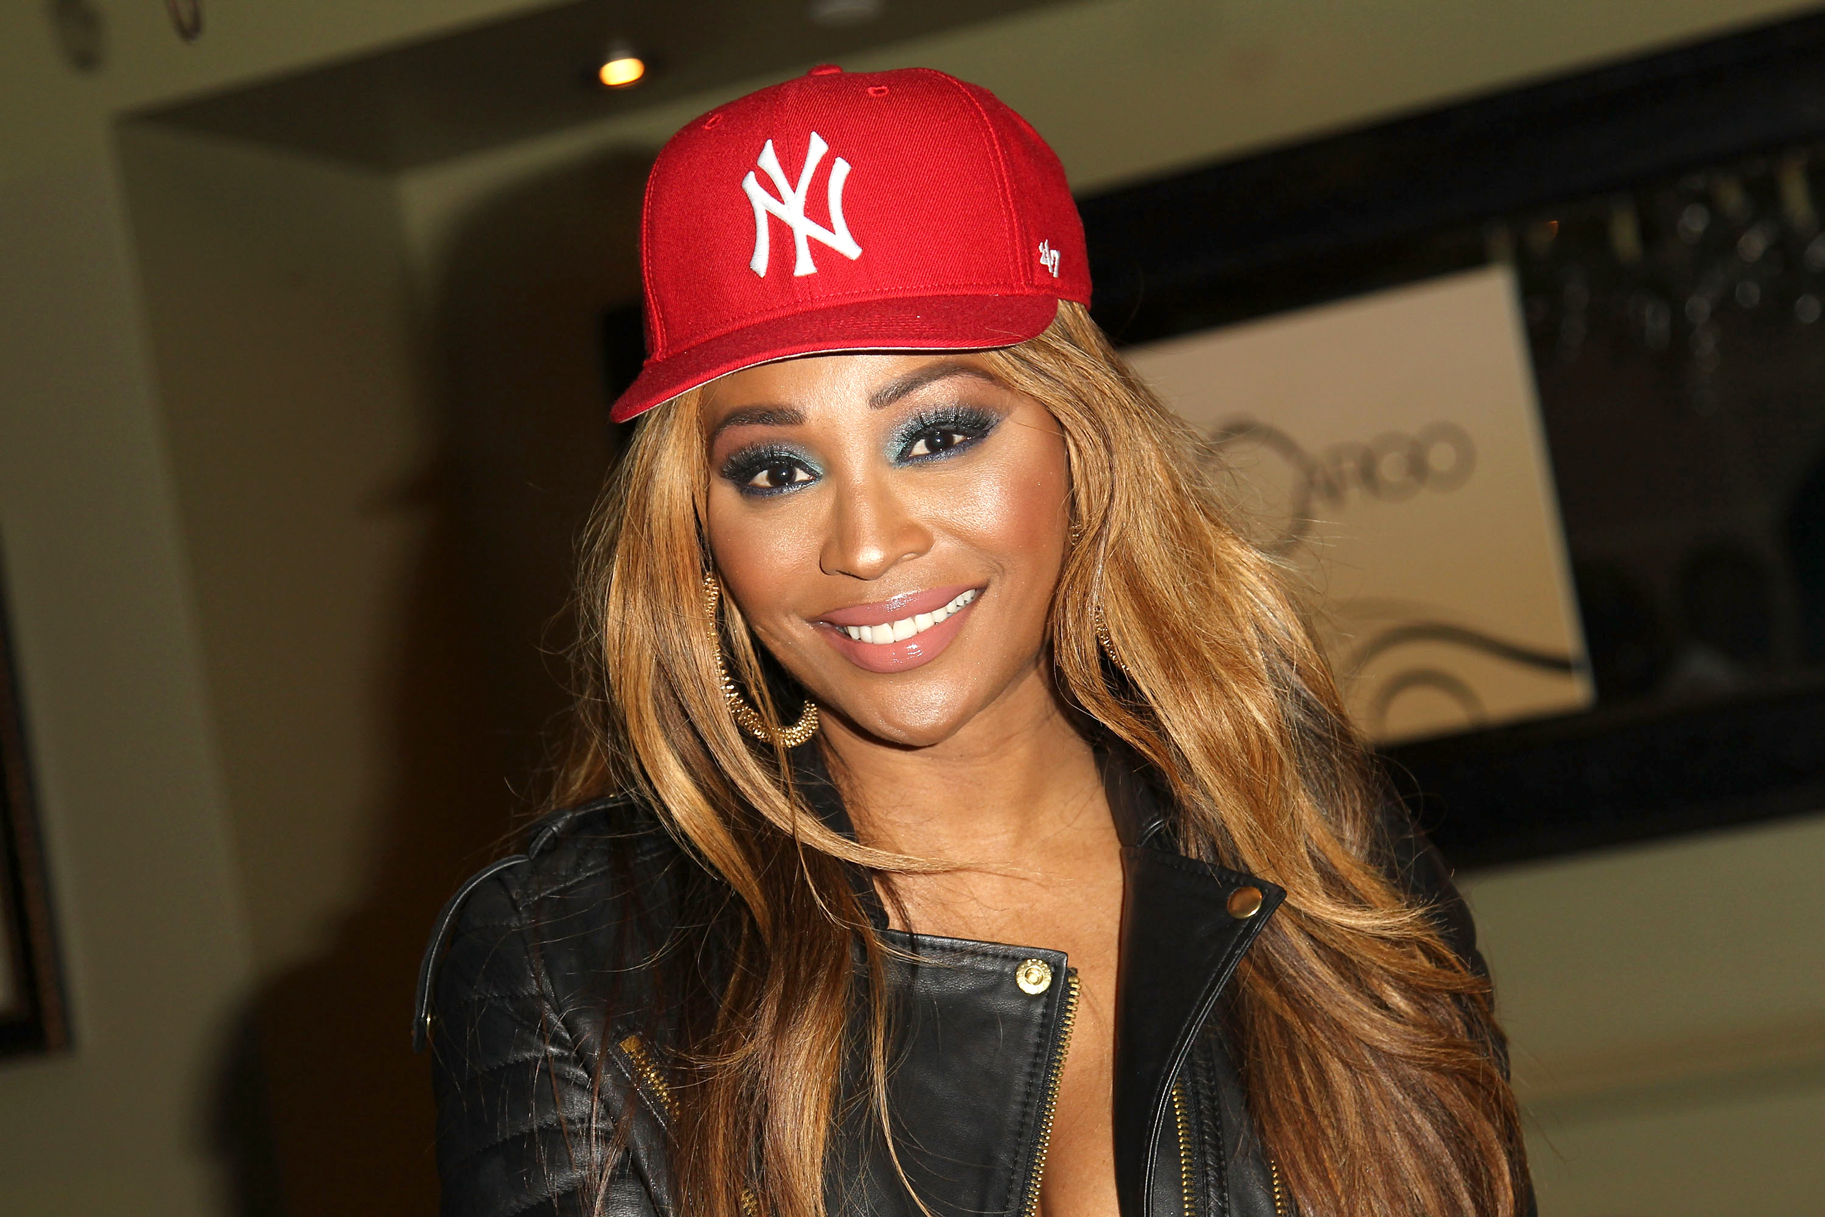 Cynthia Bailey Impresses Fans With This New, Bold Look - See Her Photo